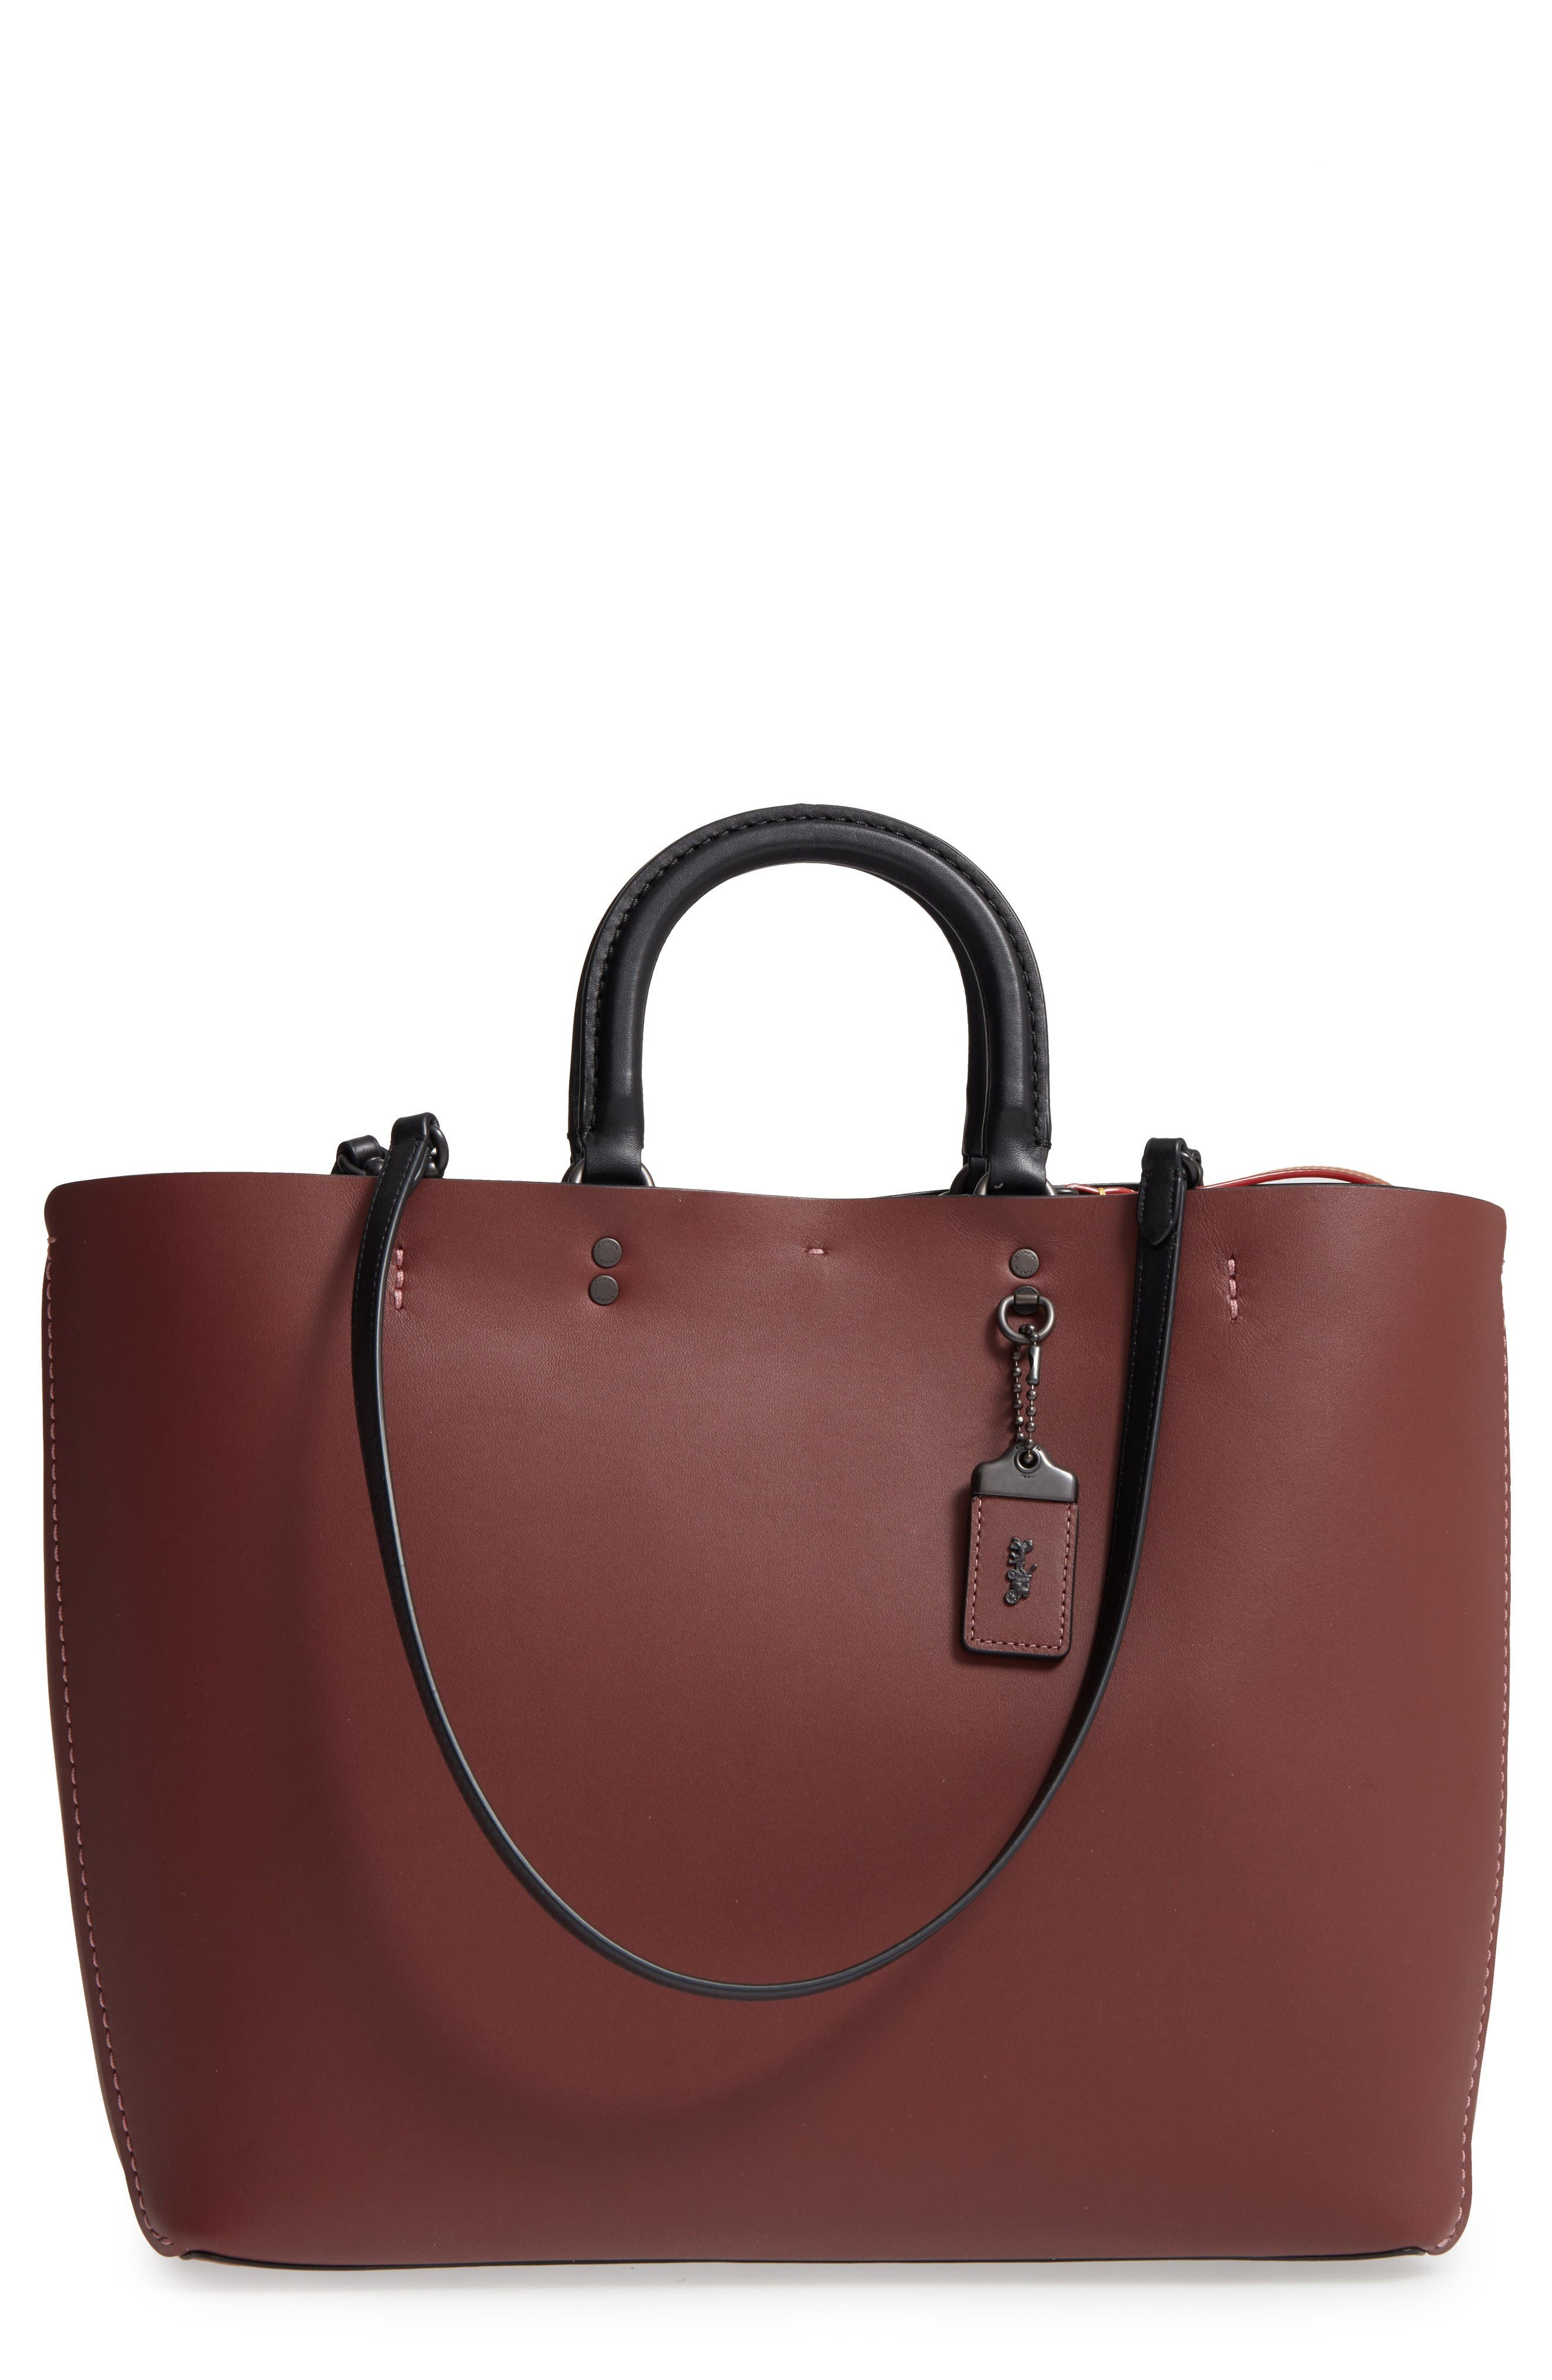 Alternate Image 1 Selected - COACH 1941 Rogue Leather Tote